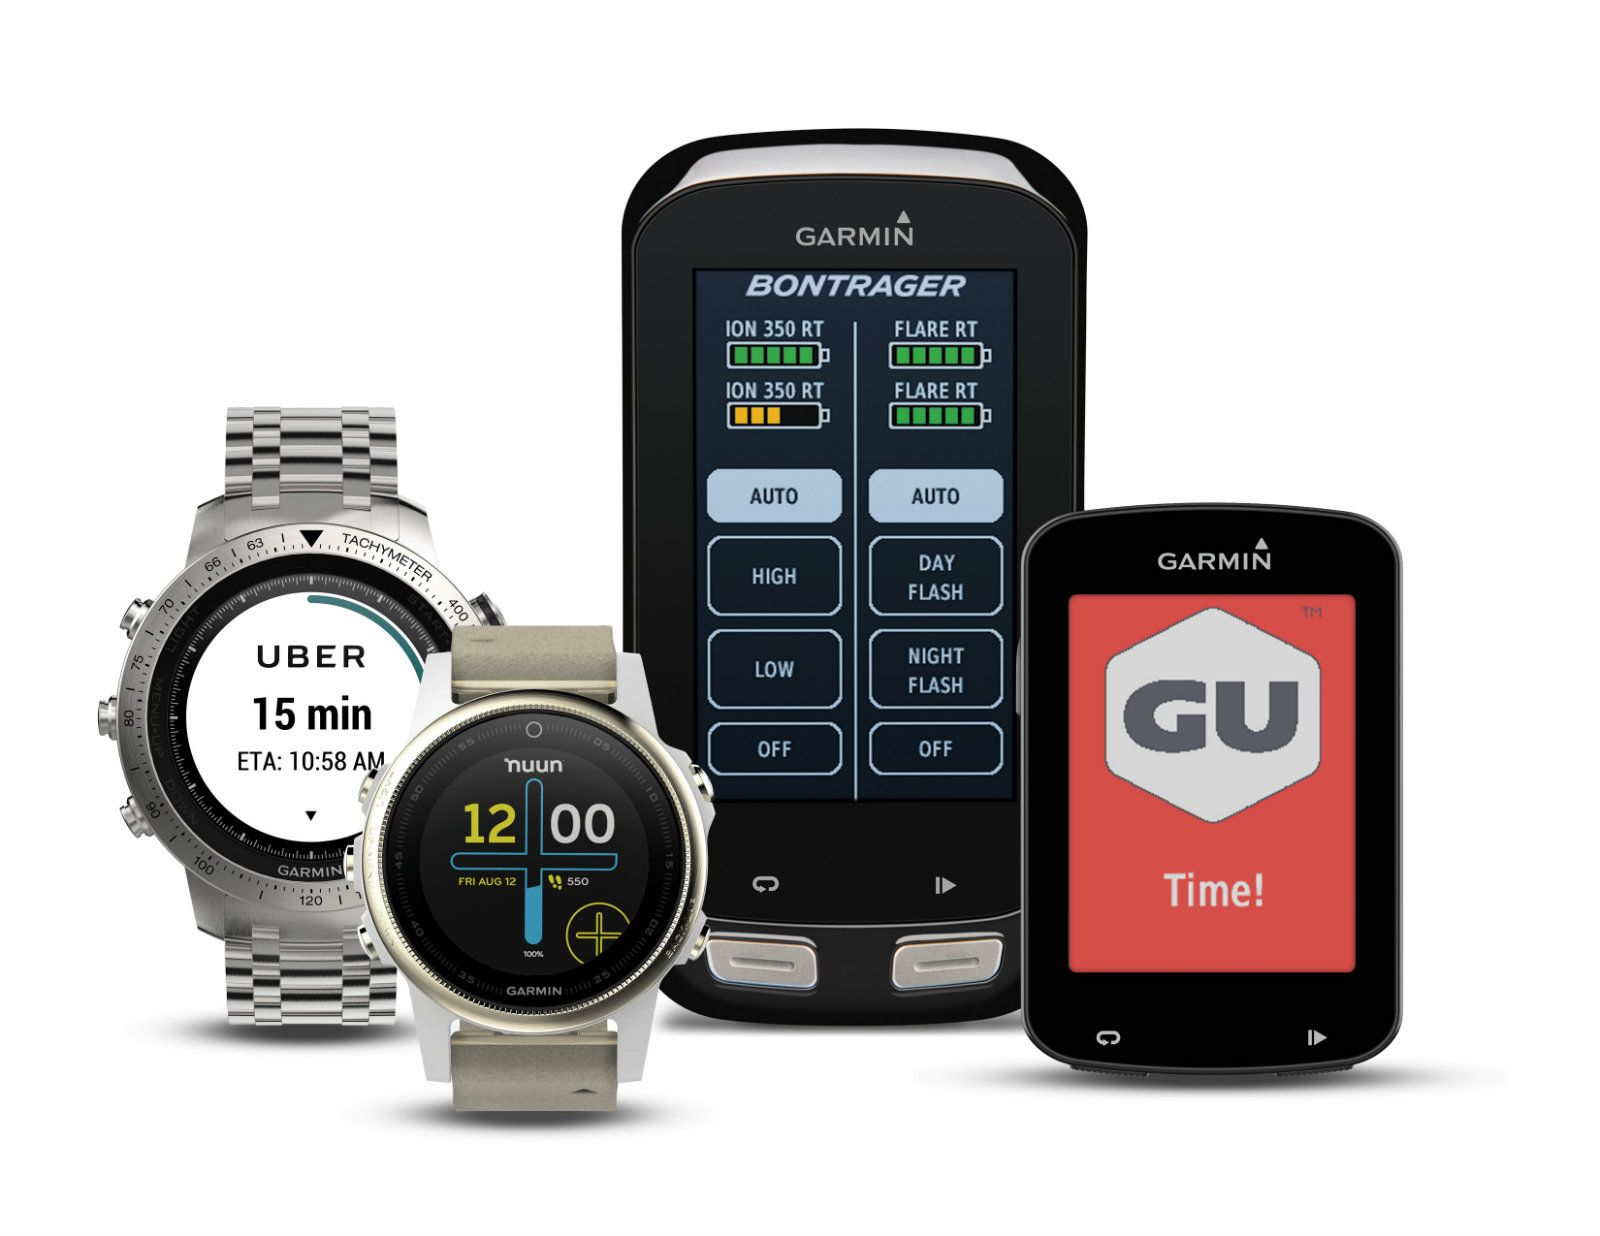 Garmin's watchapp store finally gets Uber and a few other